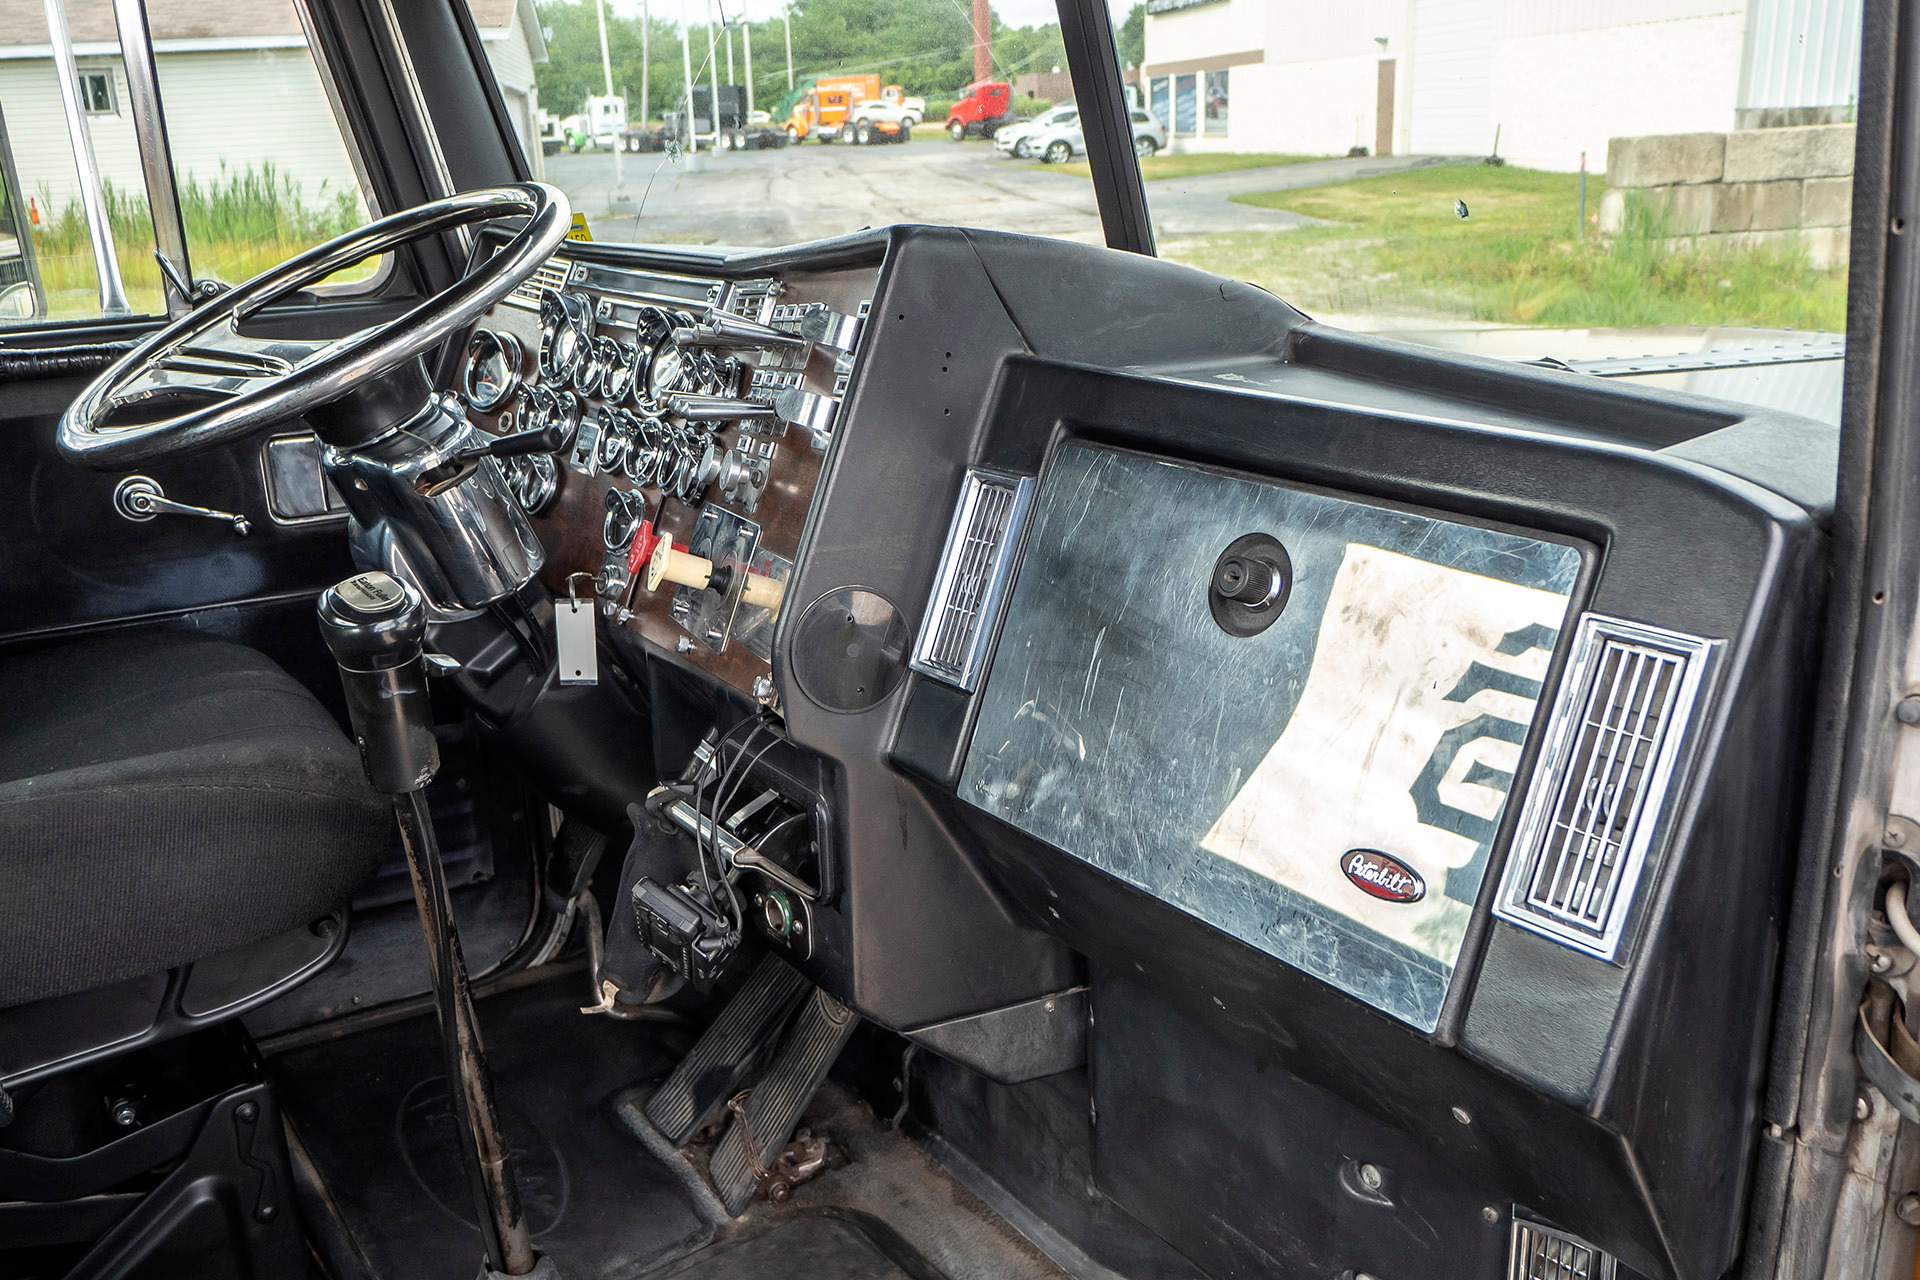 Used-1990-Peterbilt-379-Truck-Tractor-CAT-3406B-ENGINE-18-SPEED-TRANSMISSION